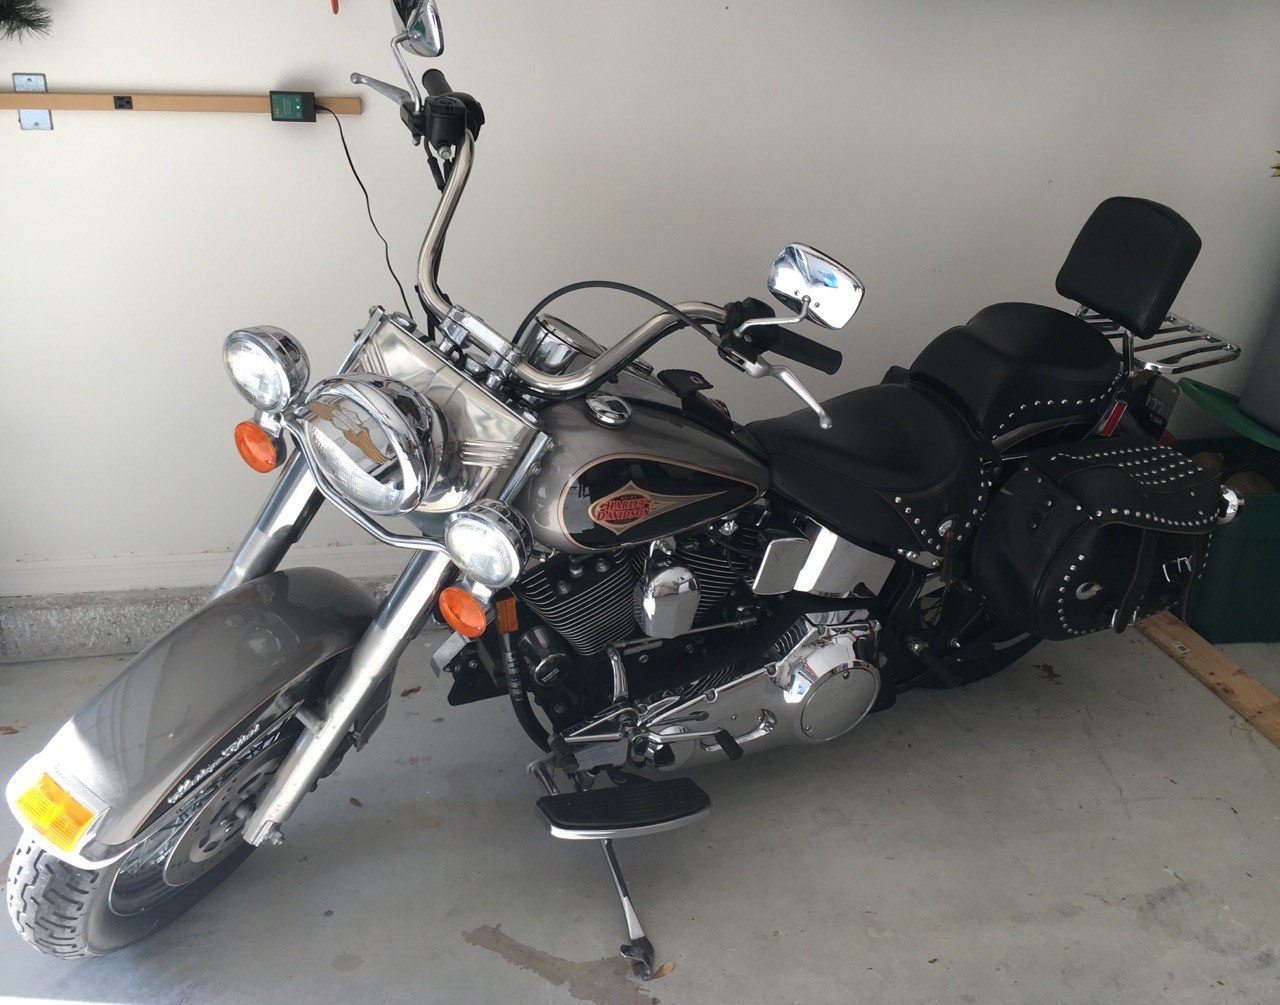 1996 harley davidson softail heritage classic for sale near st rh motorcycles autotrader com 03 Harley Davidson Torque Specs Harley-Davidson Manual FLSTS